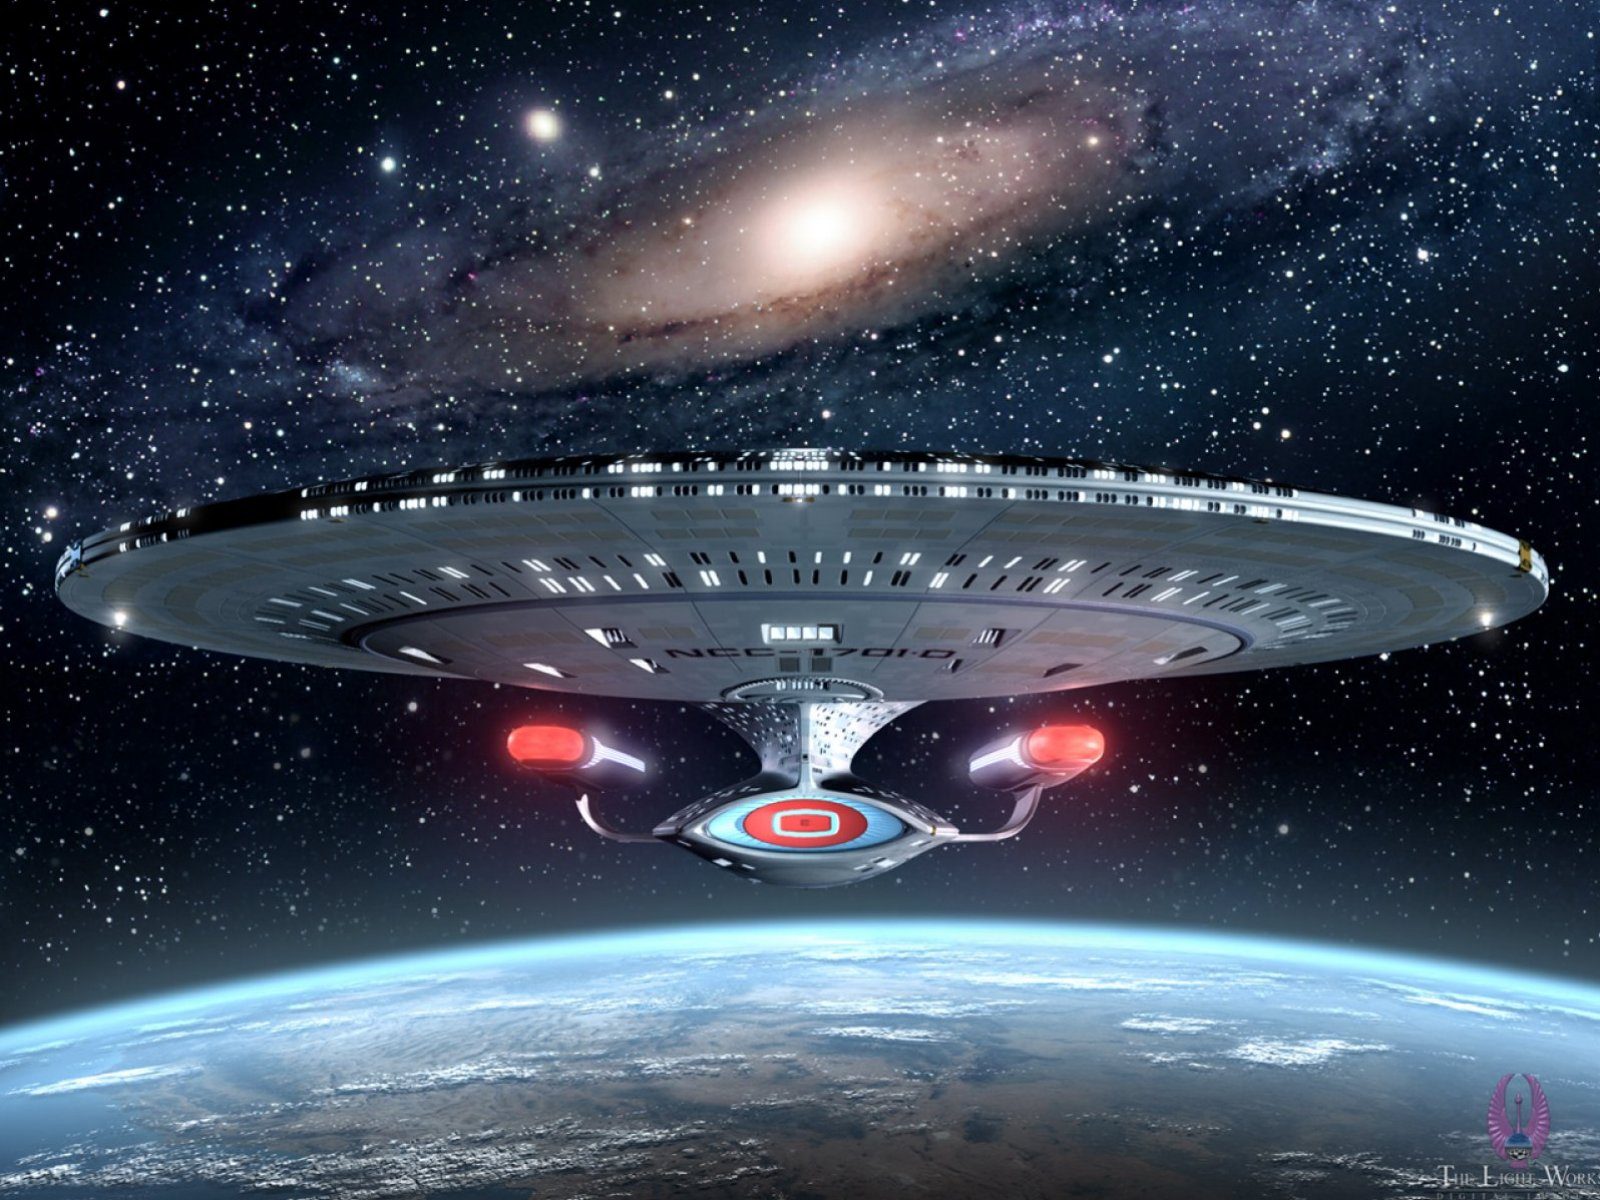 image - 19 star trek enterprise ncc1701d starship wallpaper xx